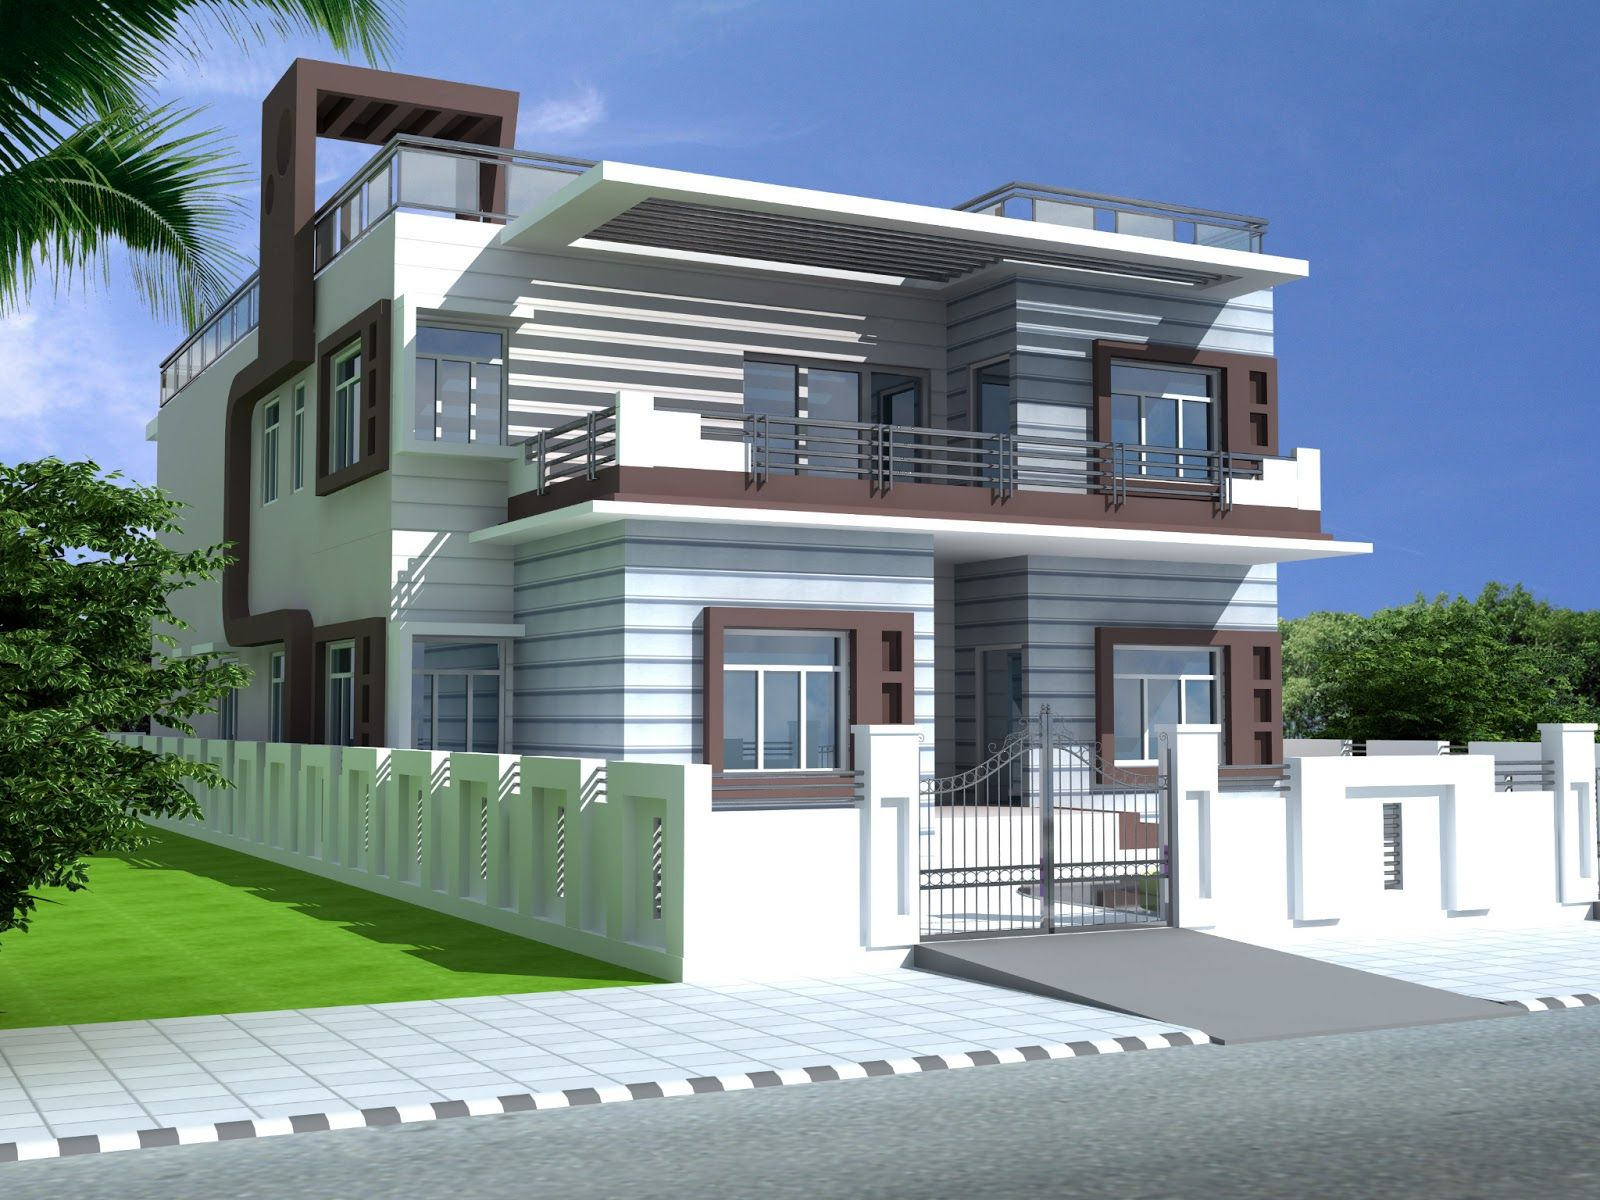 6 bedrooms duplex house design in 390m2 13m x 30m for Nice home design pictures